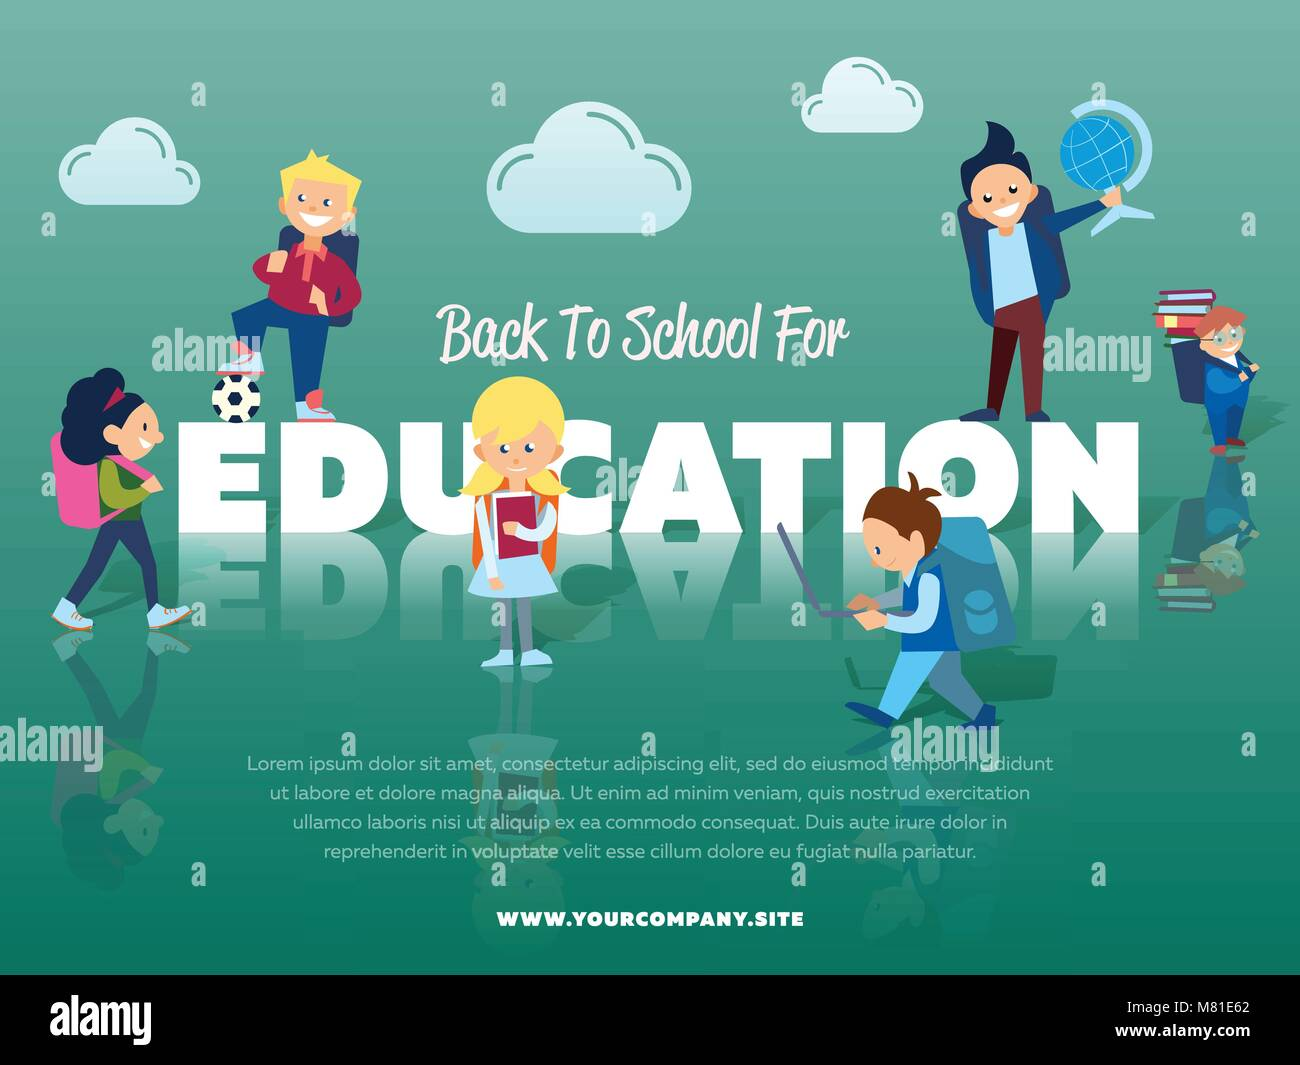 Back to school for education banner - Stock Vector